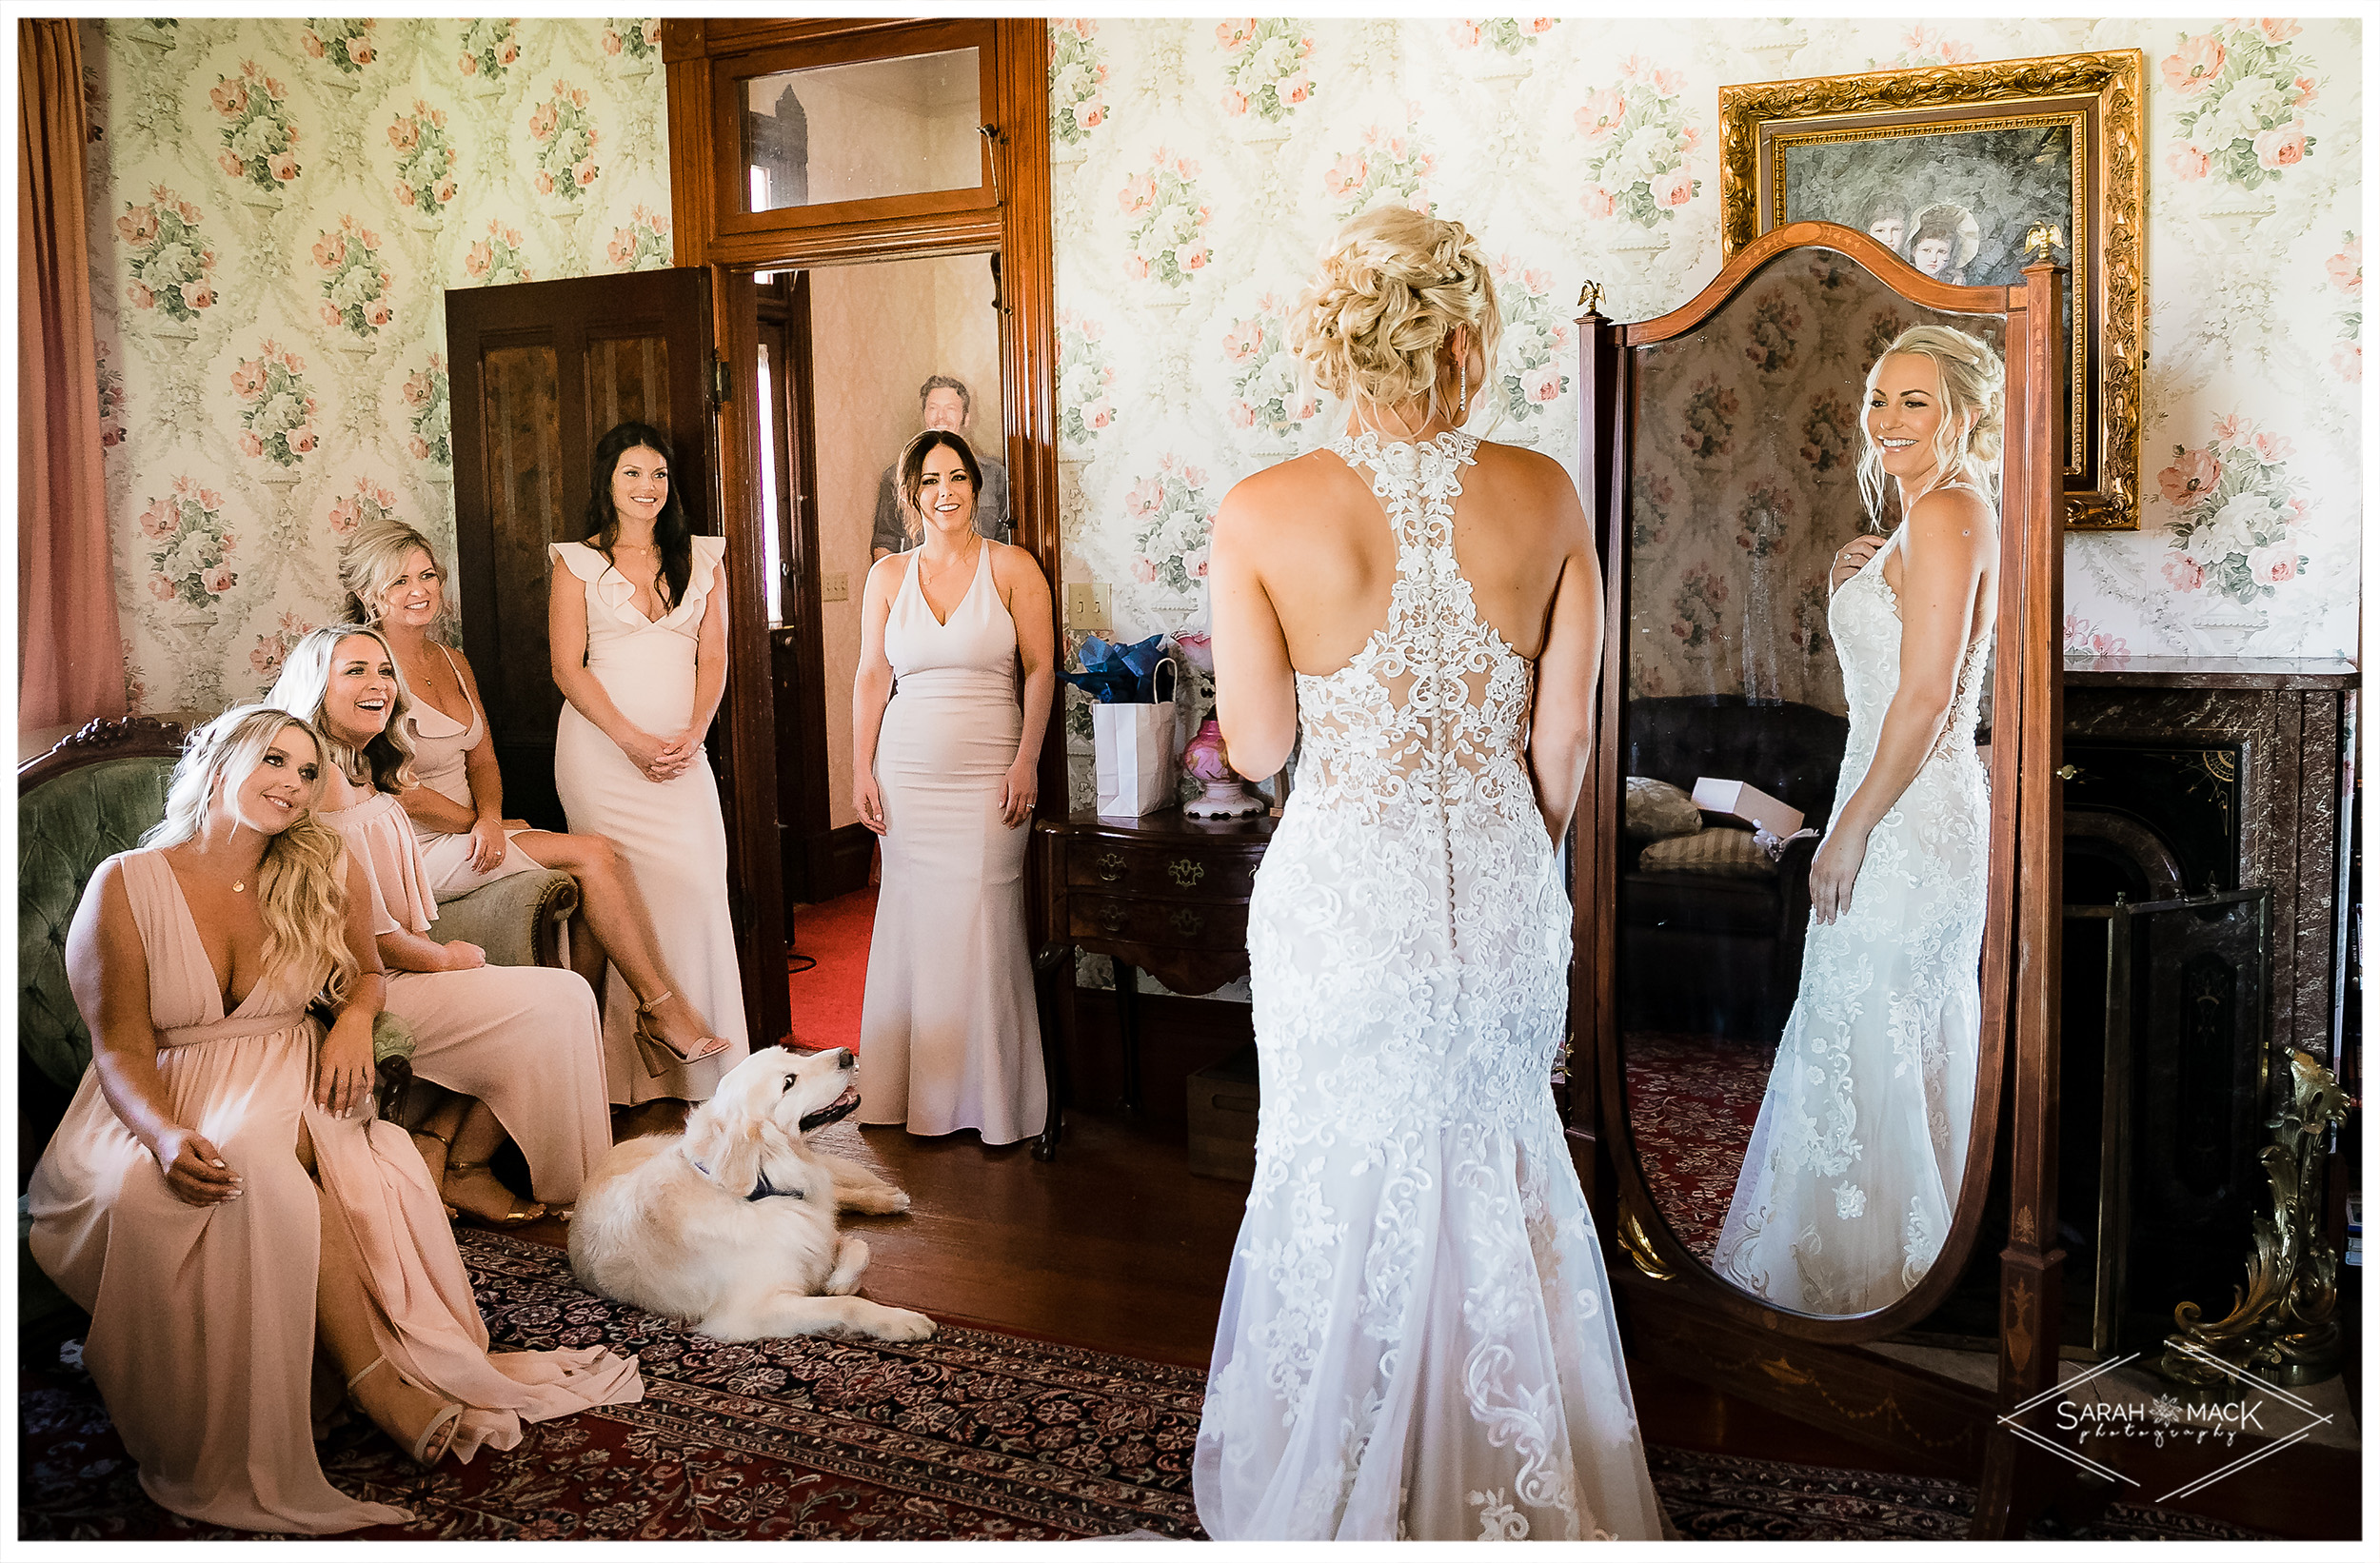 MA-Chandler-Ranch-Paso-Robles-Wedding-Photography-16.jpg